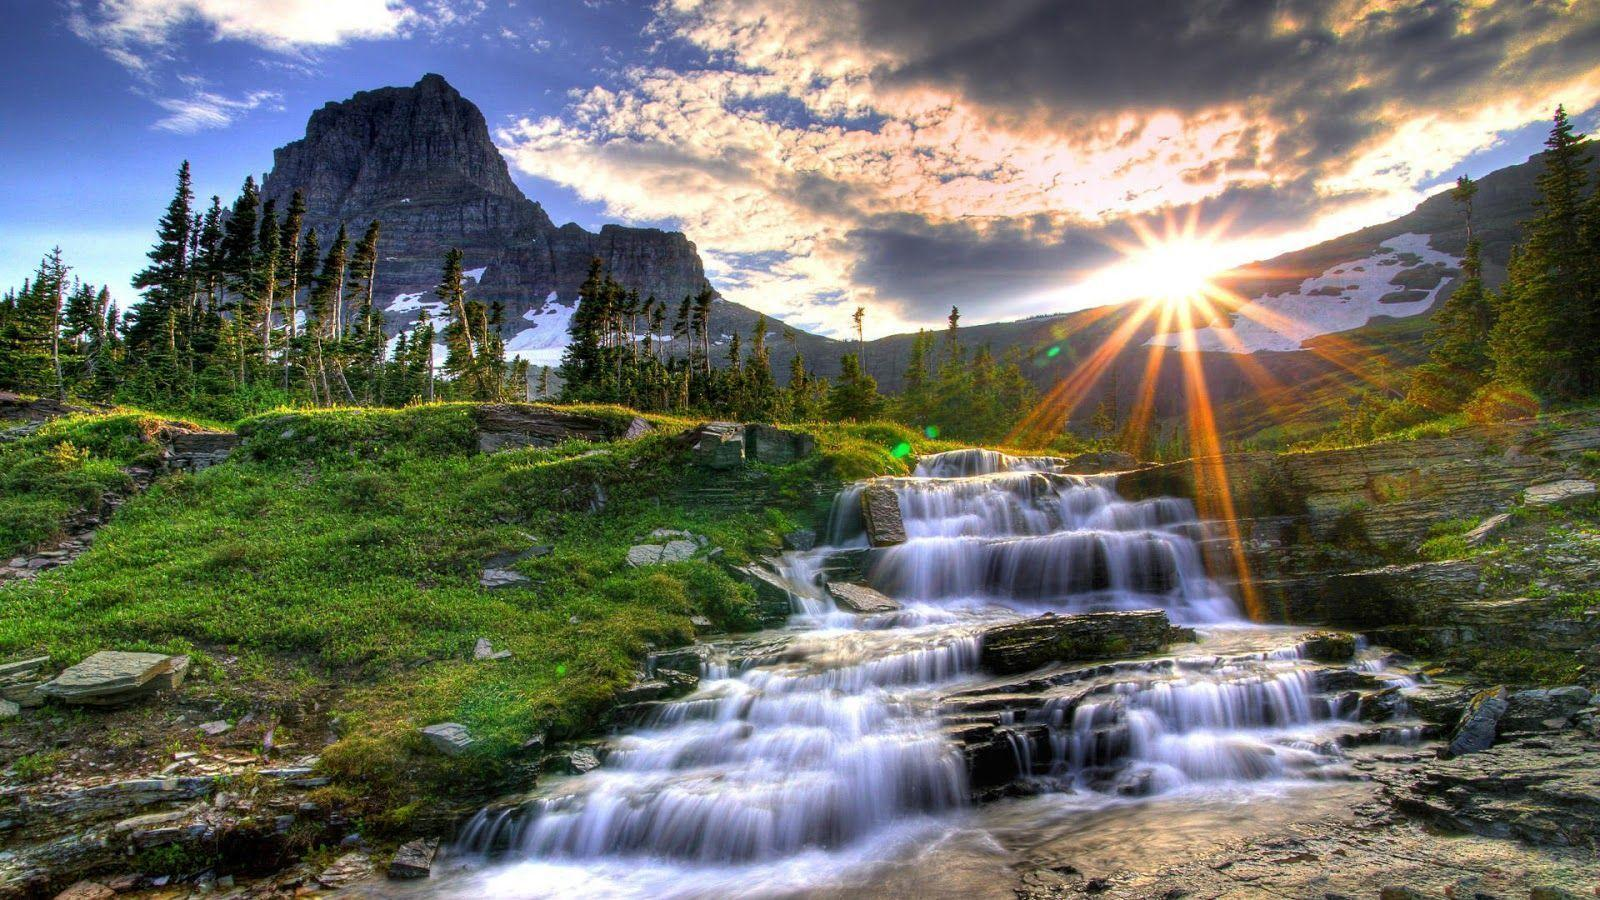 1080p Nature wallpapers Make Your PC Welcome